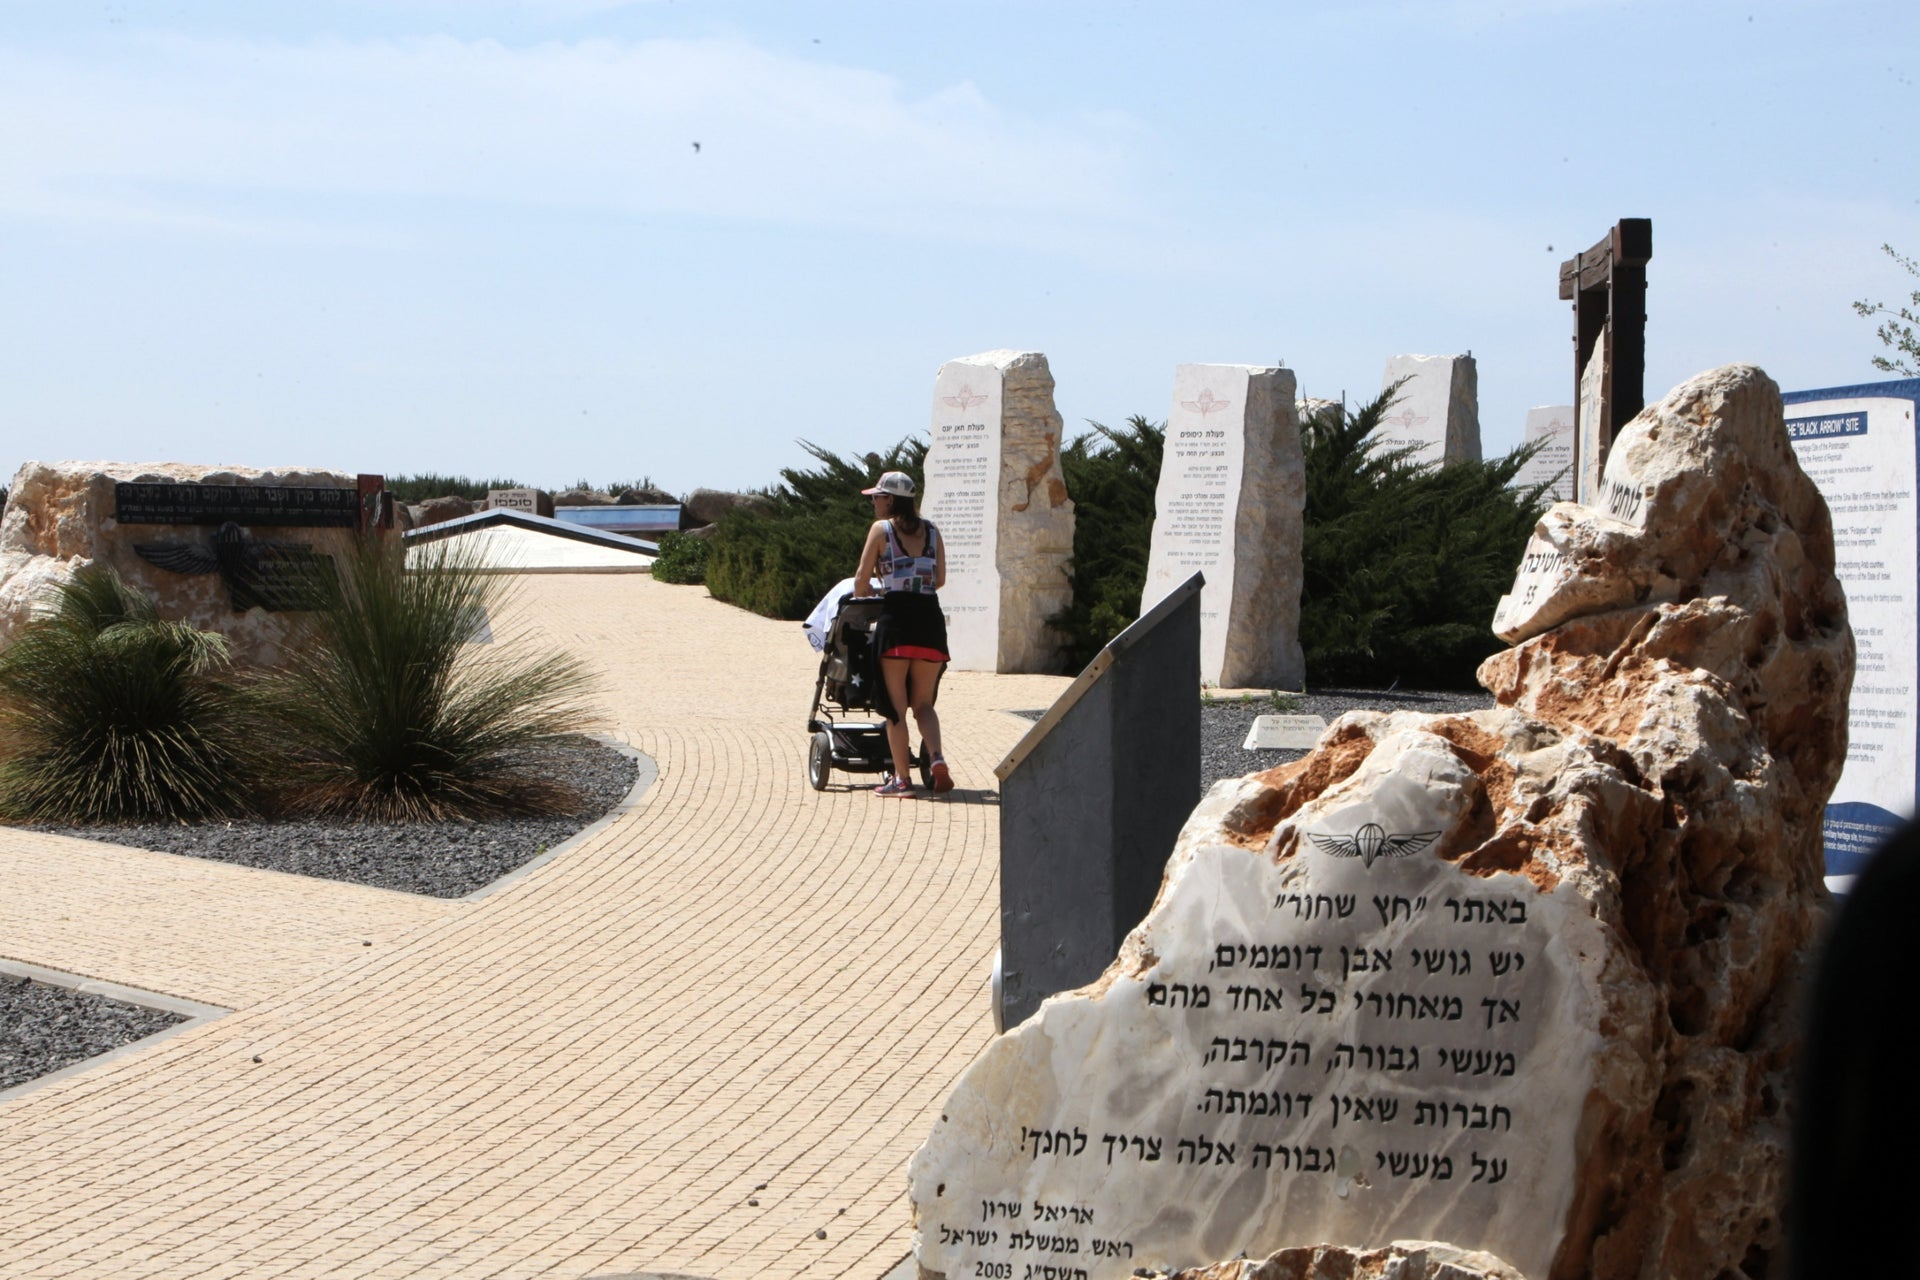 The Black Arrow monument. Eight military funerals, like those following the 1955 operation commemorated here, would today be perceived as a national calamity obliging Israel to go to war.